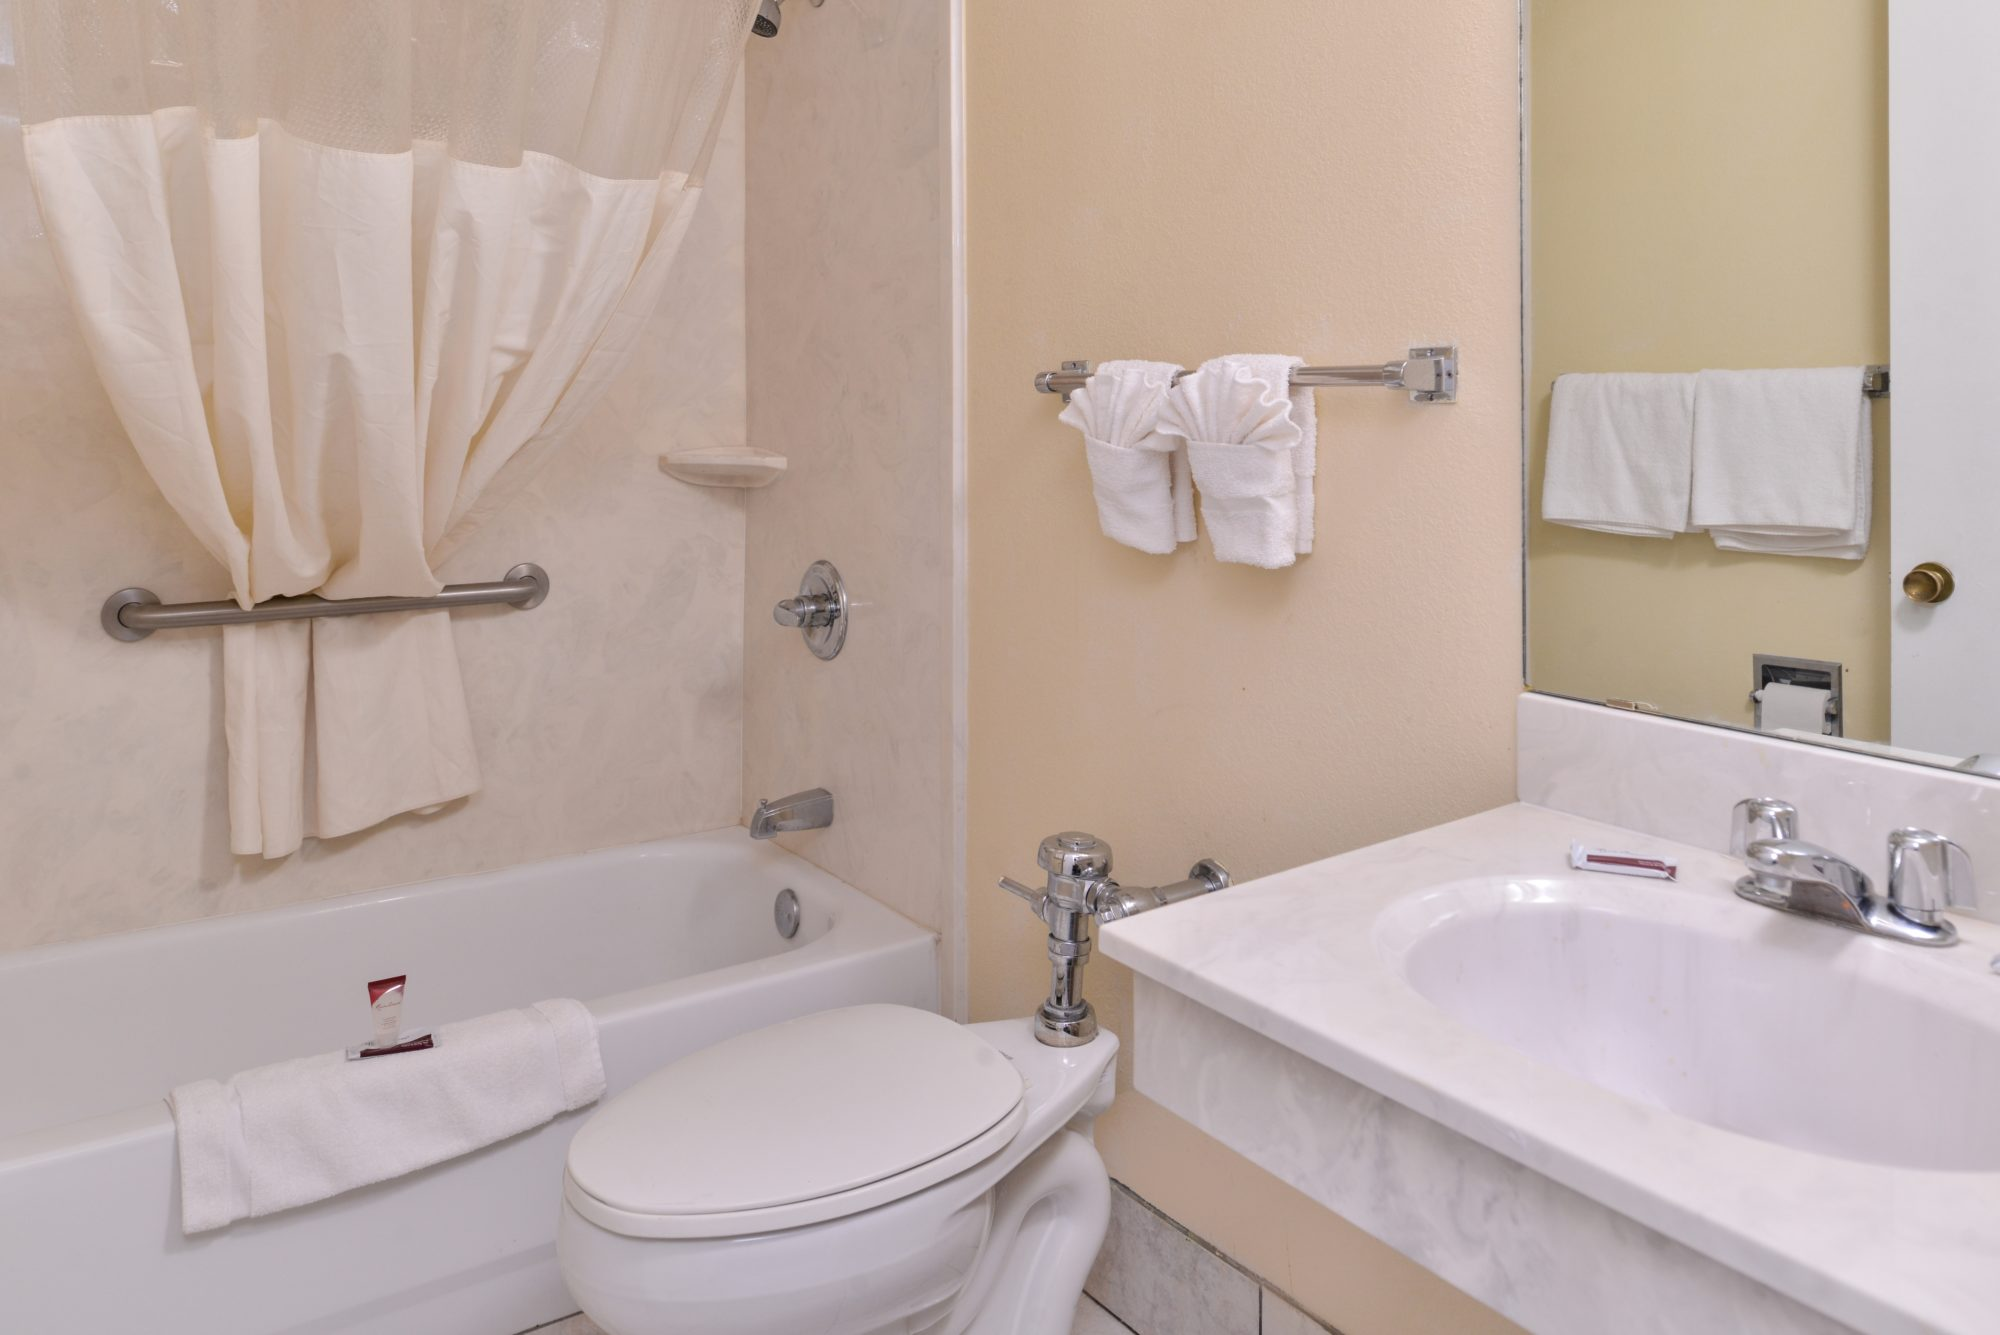 Shower tub, shower curtain, towel rail with towels, toilet, vanity unit, mirror